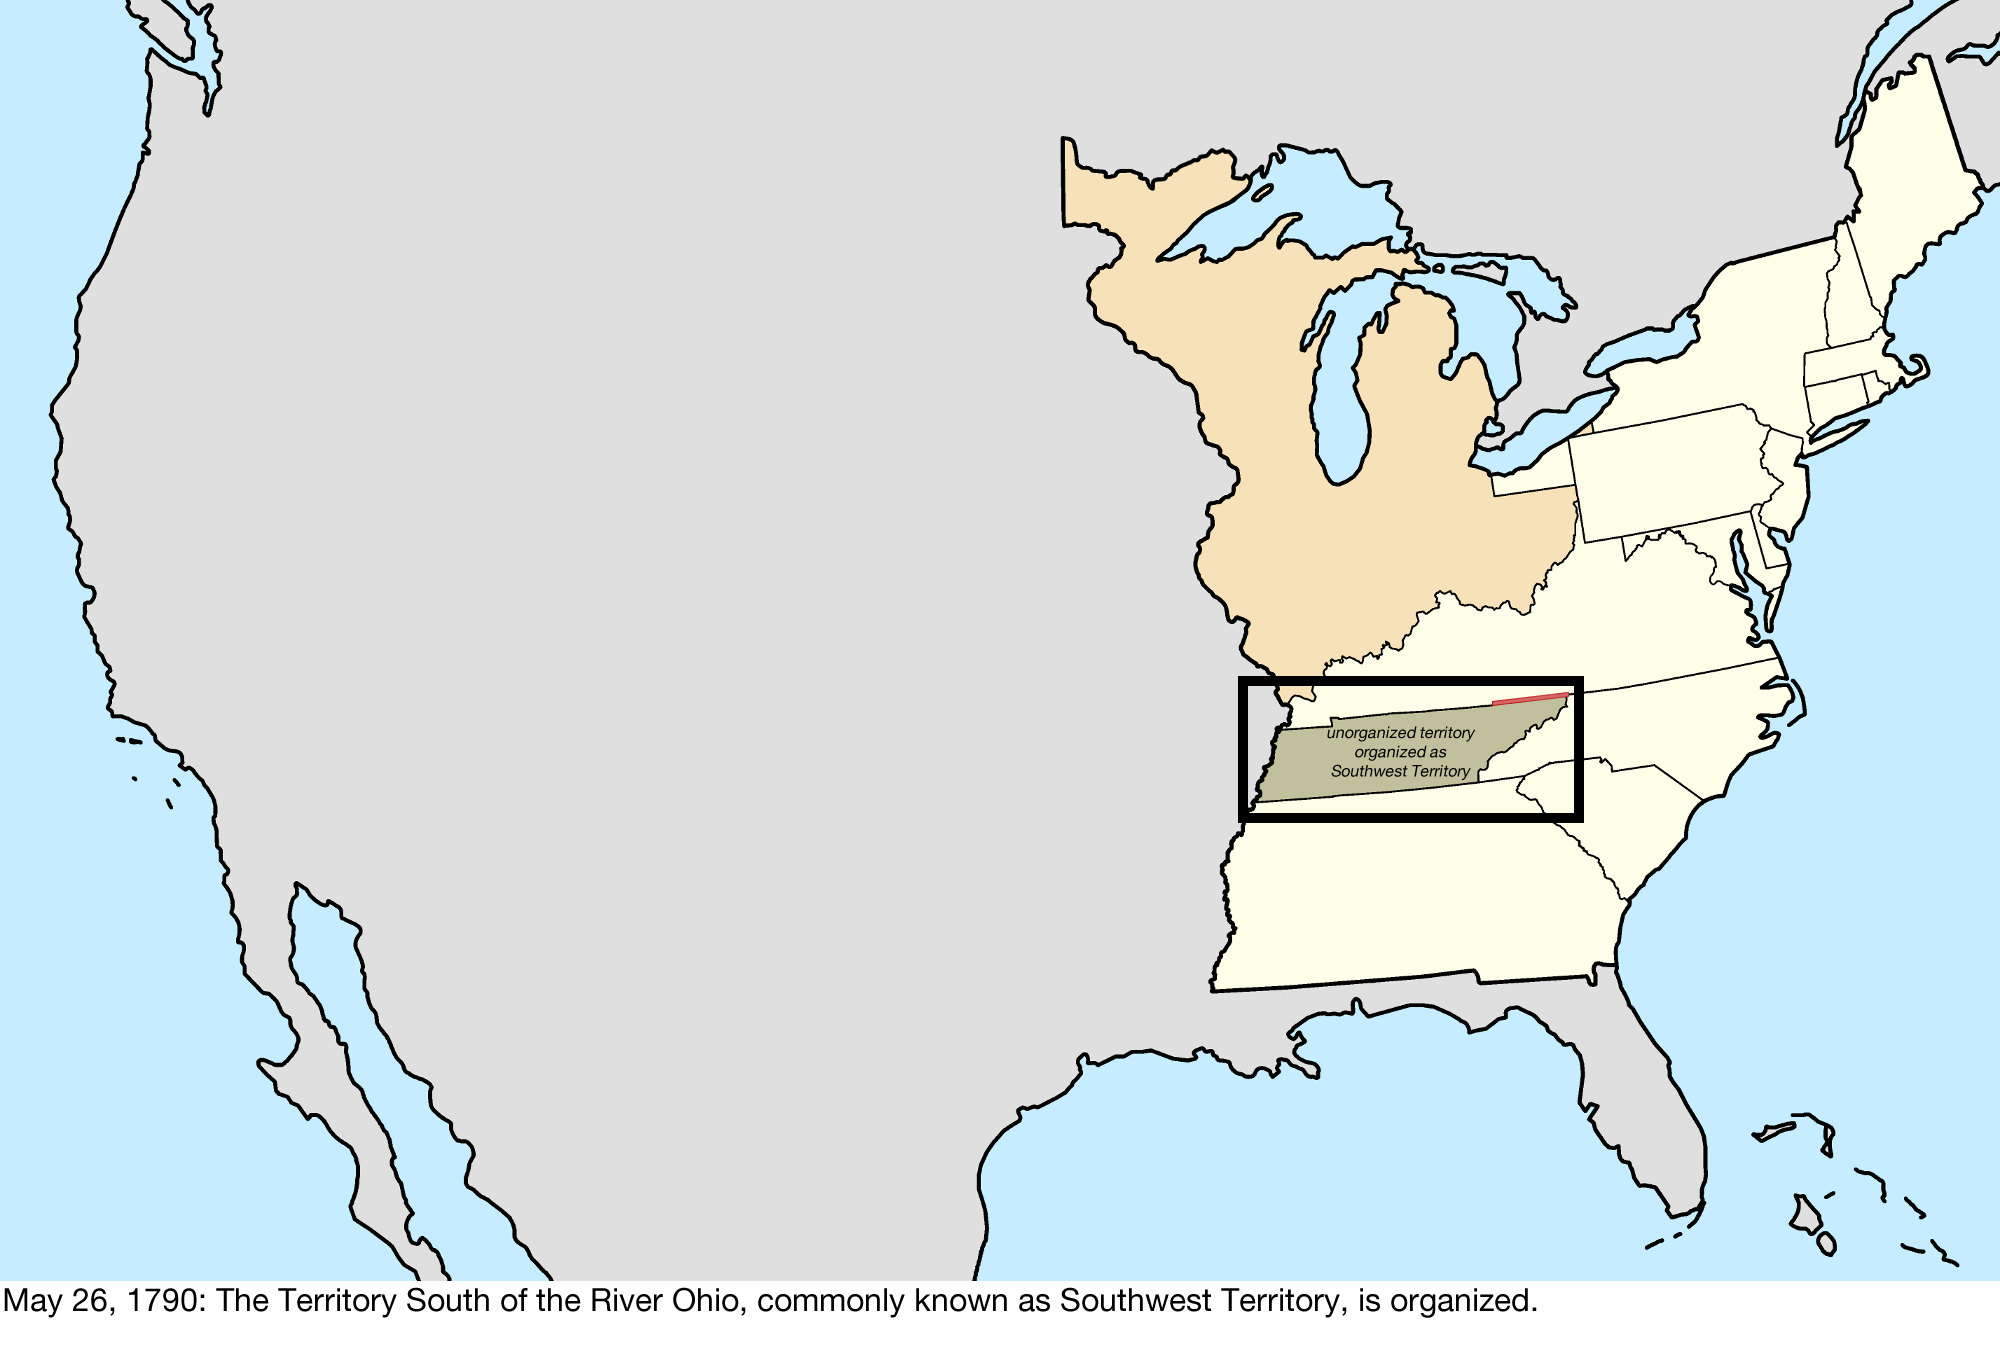 1790 Map Of United States.File United States Central Change 1790 05 26 Png Wikipedia